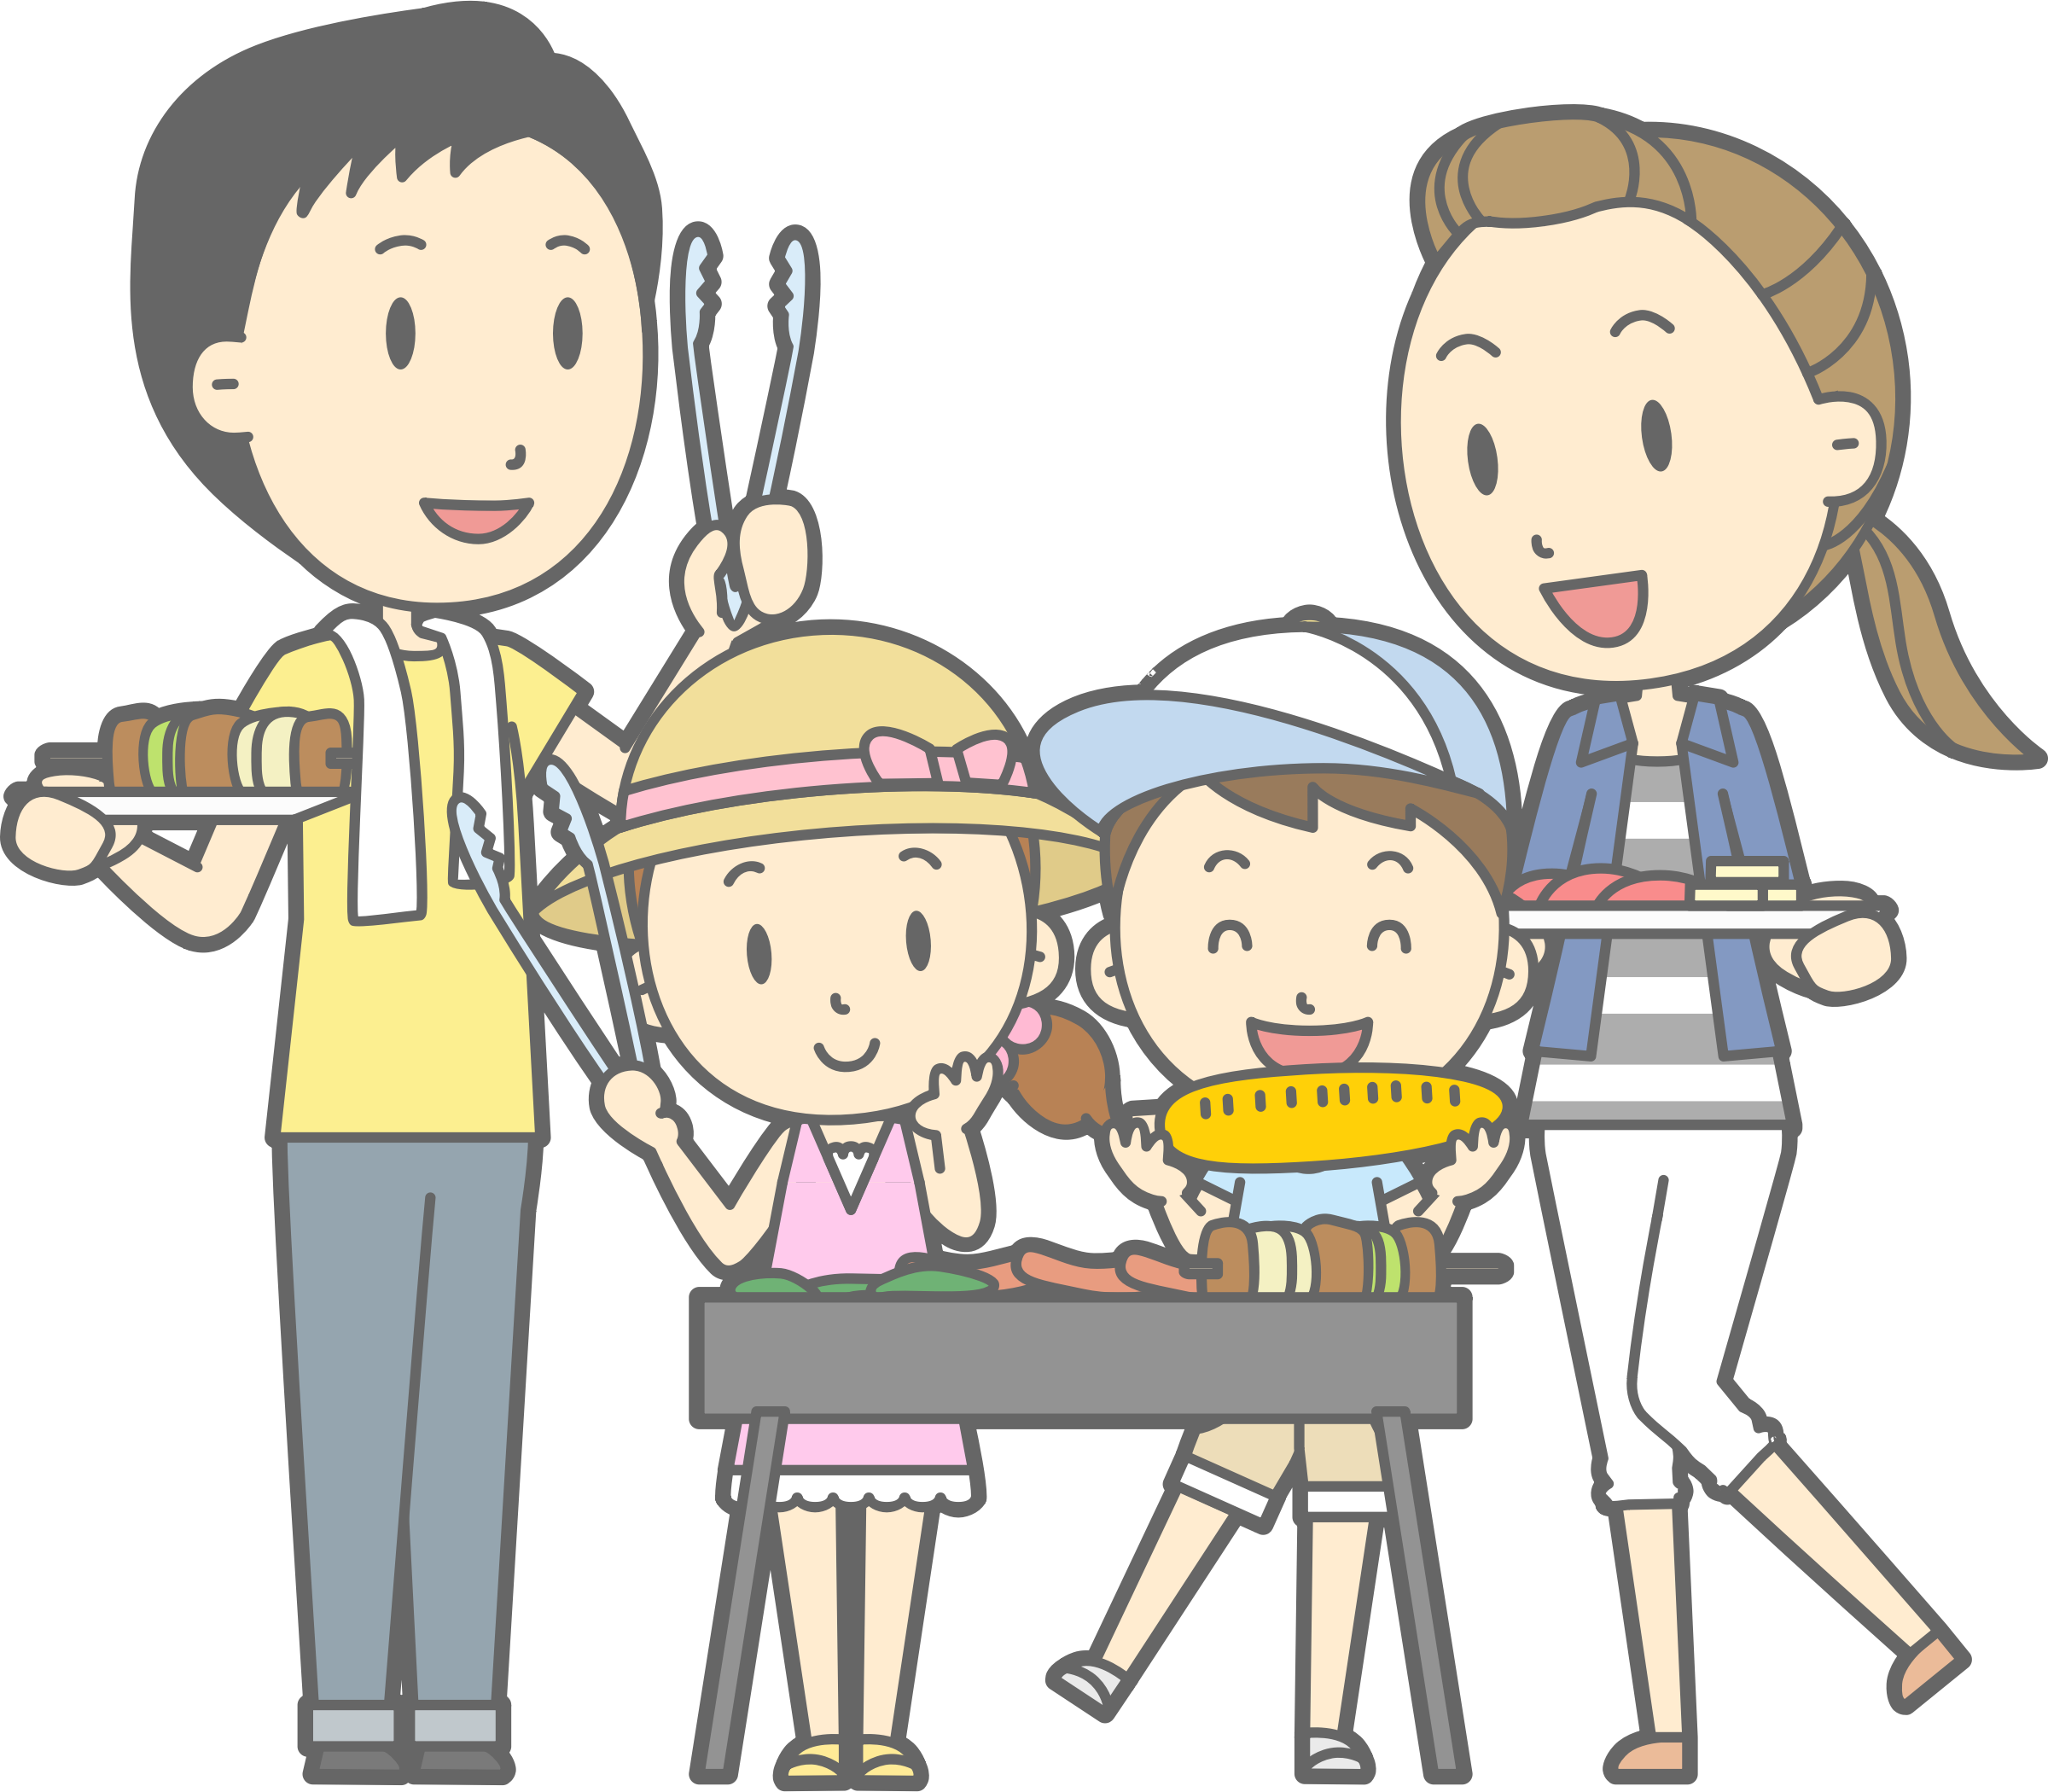 vector royalty free stock Big image png. Grill clipart family barbecue